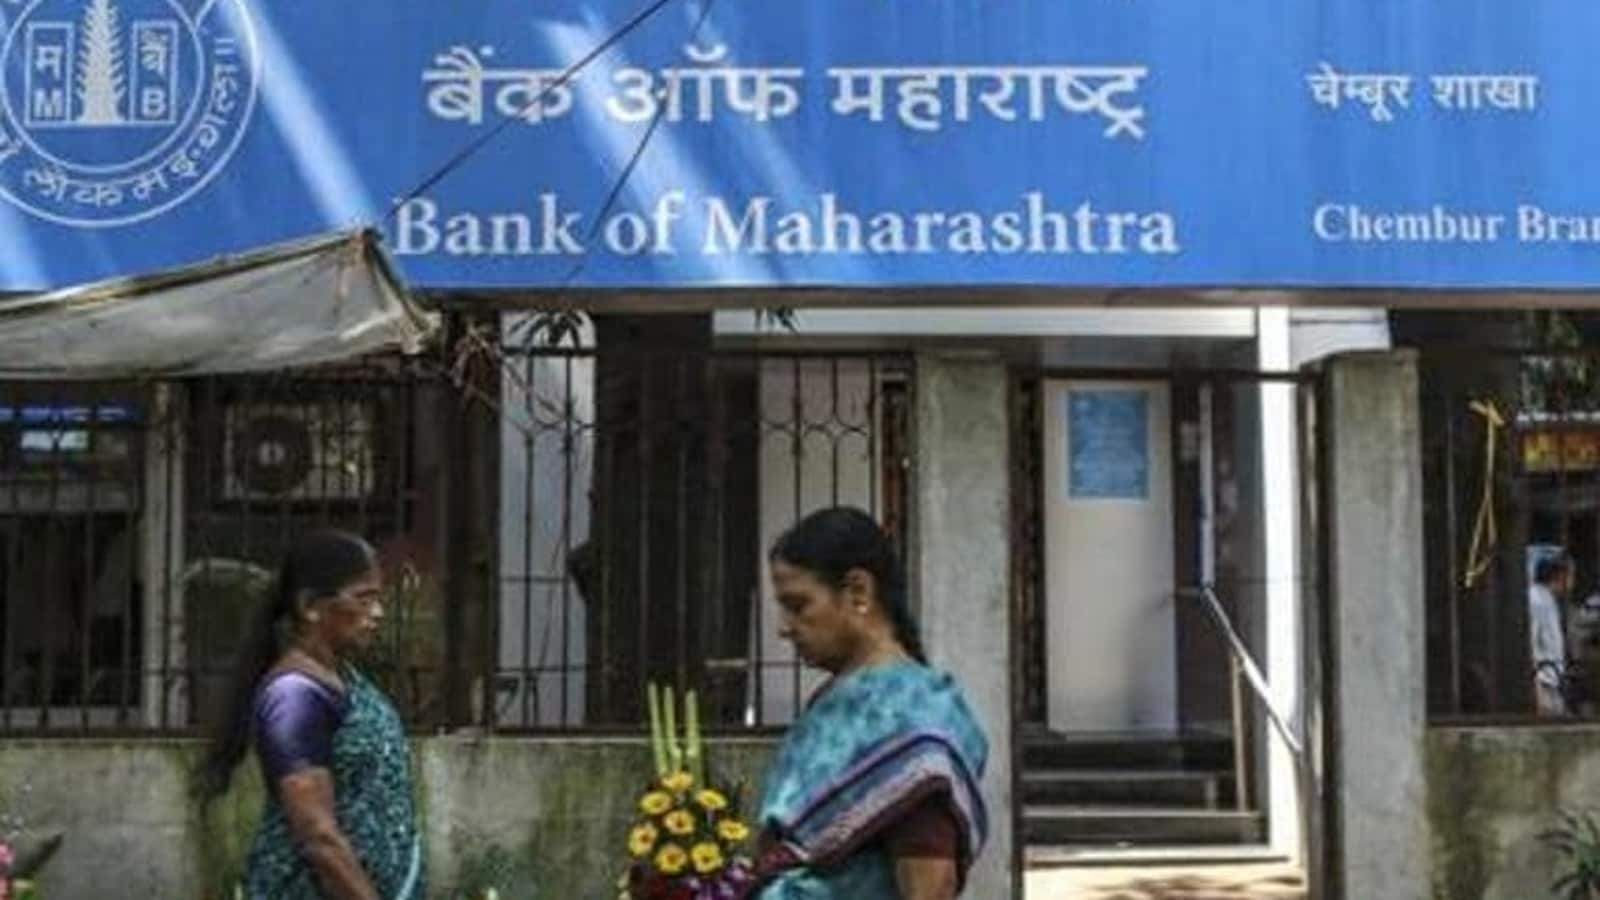 Bank of Maharashtra SO recruitment: Apply for 190 specialist officer posts